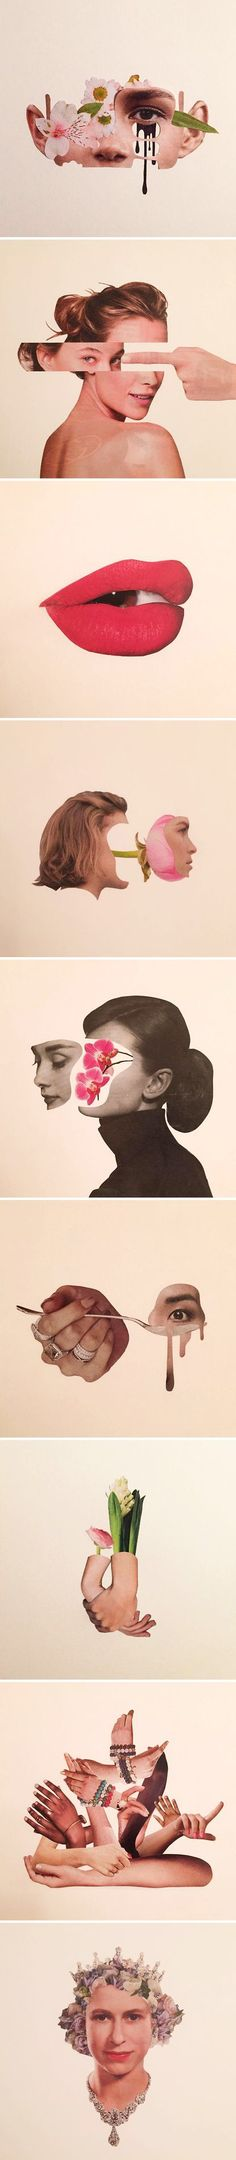 Collage - Adam Hale